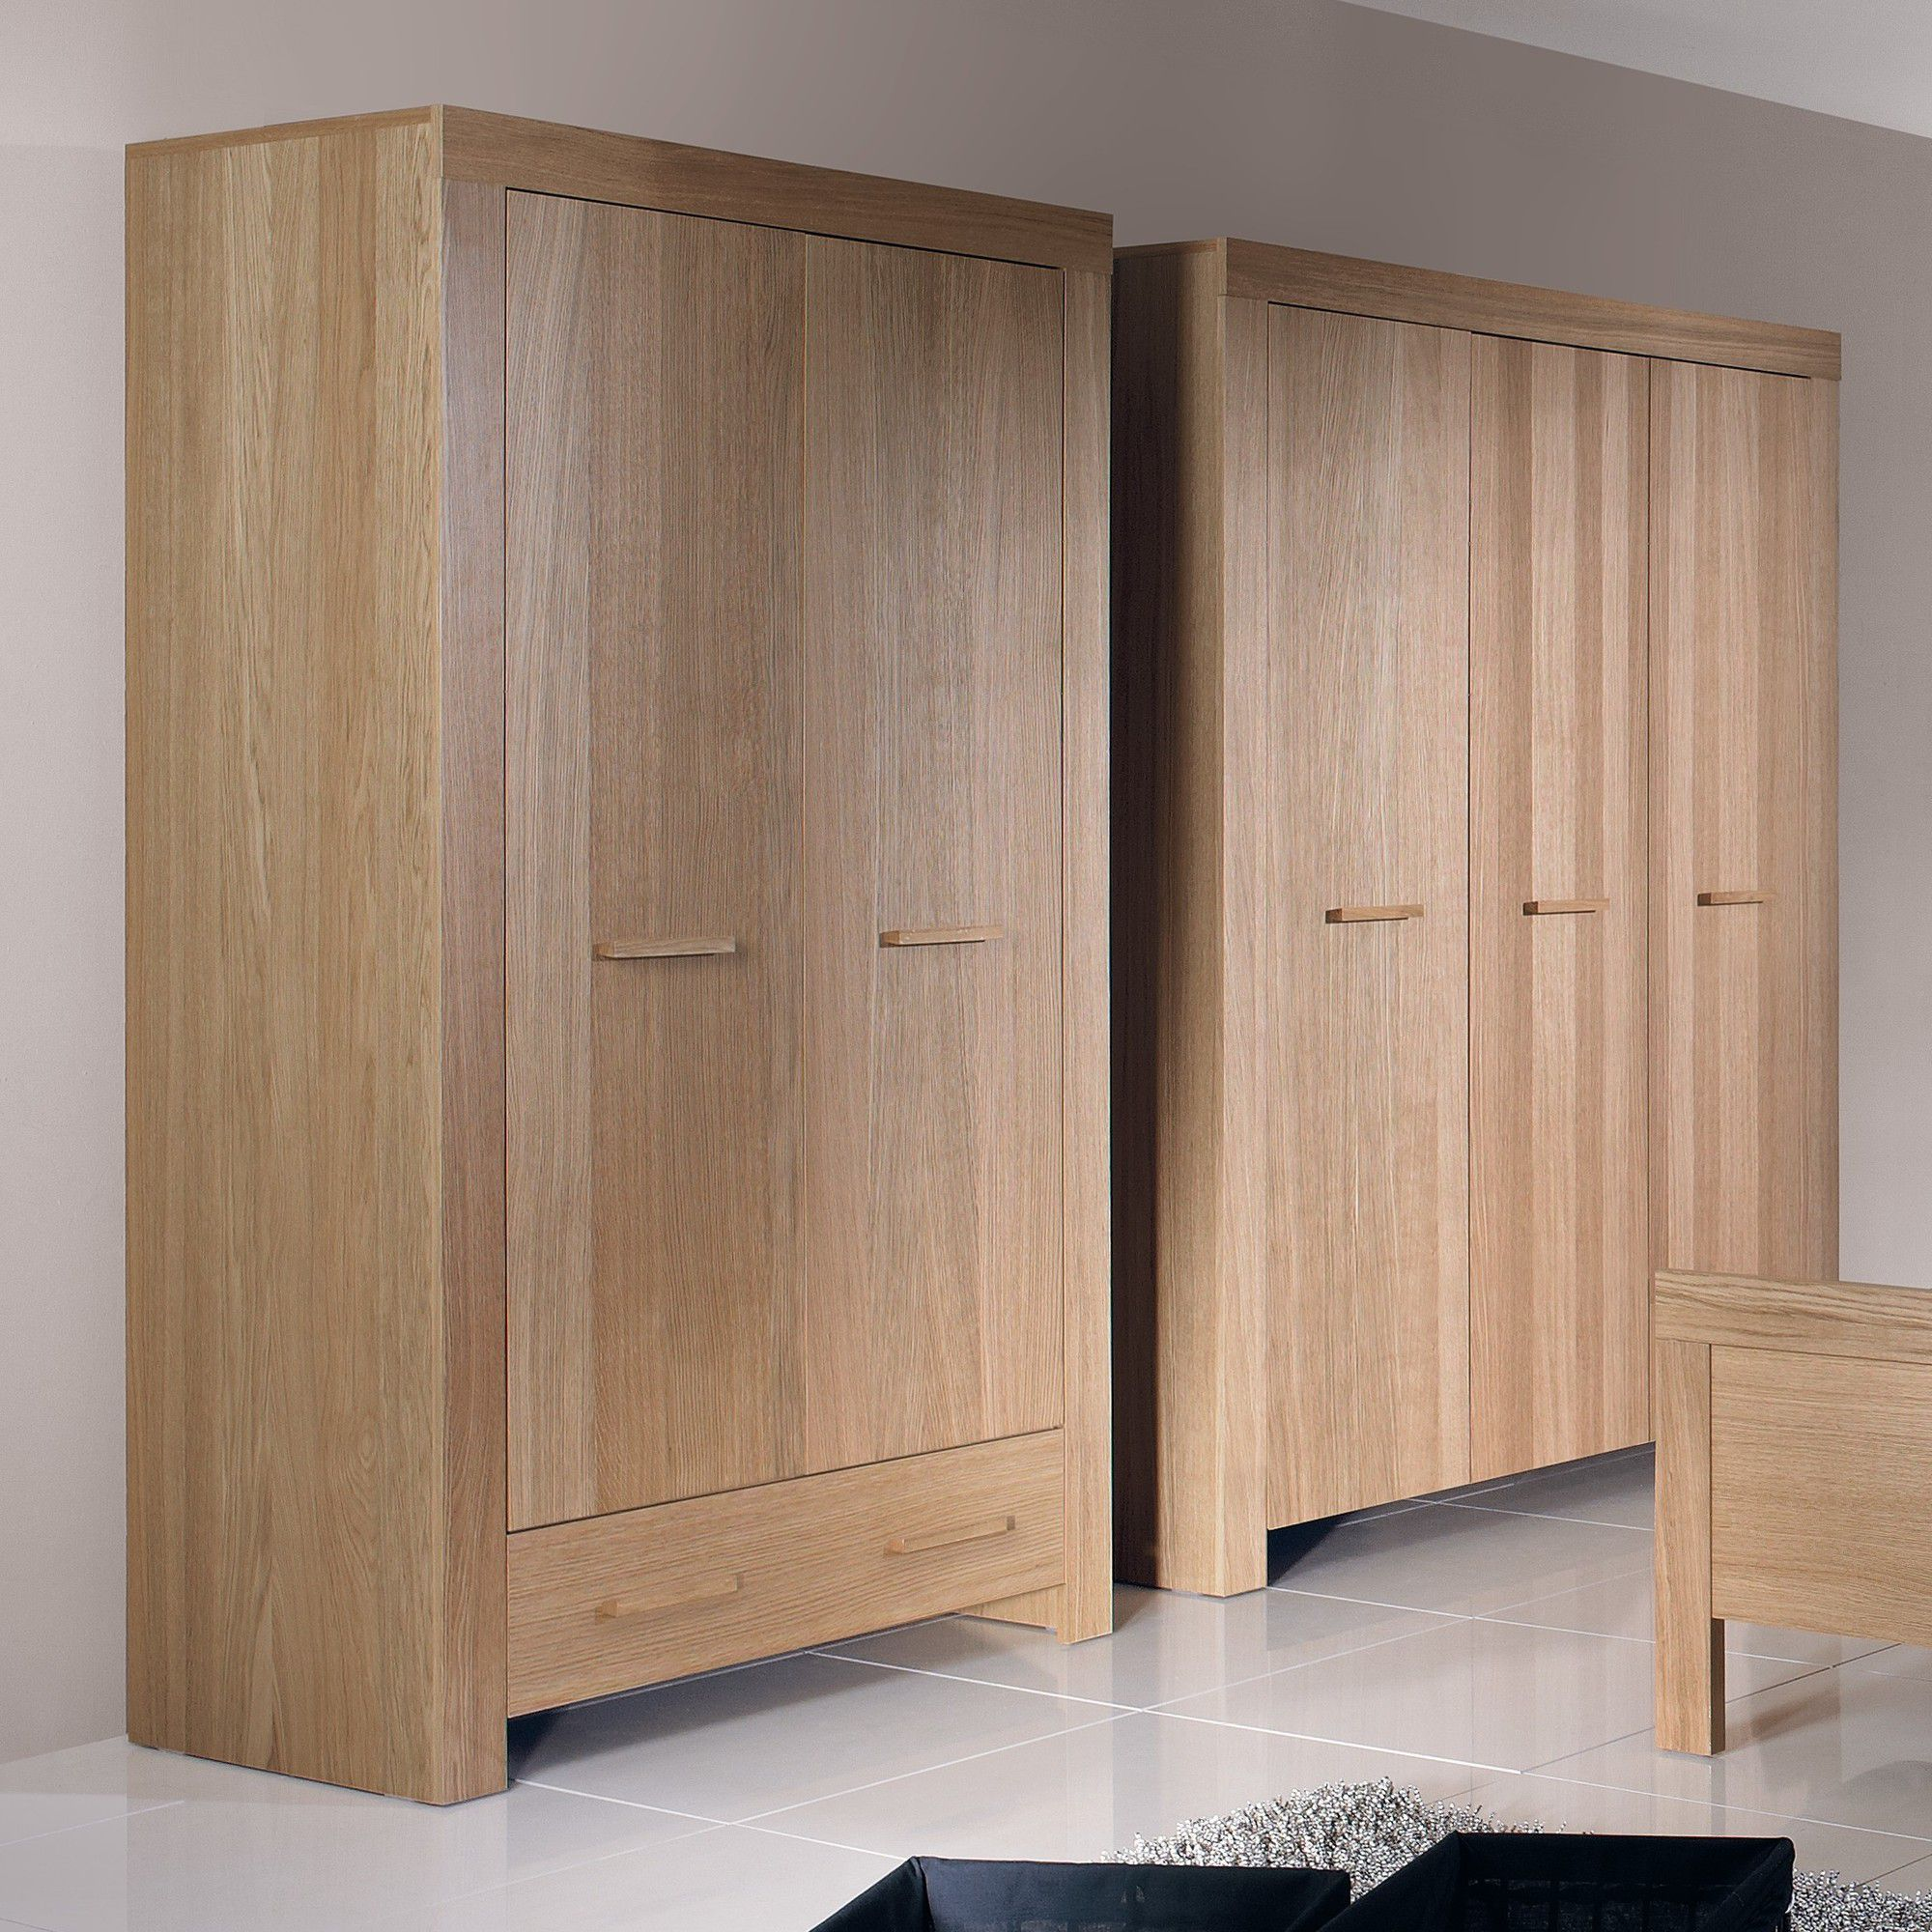 Urbane Designs Jive 2 Door 1 Drawer Wardrobe in Oak at Tescos Direct